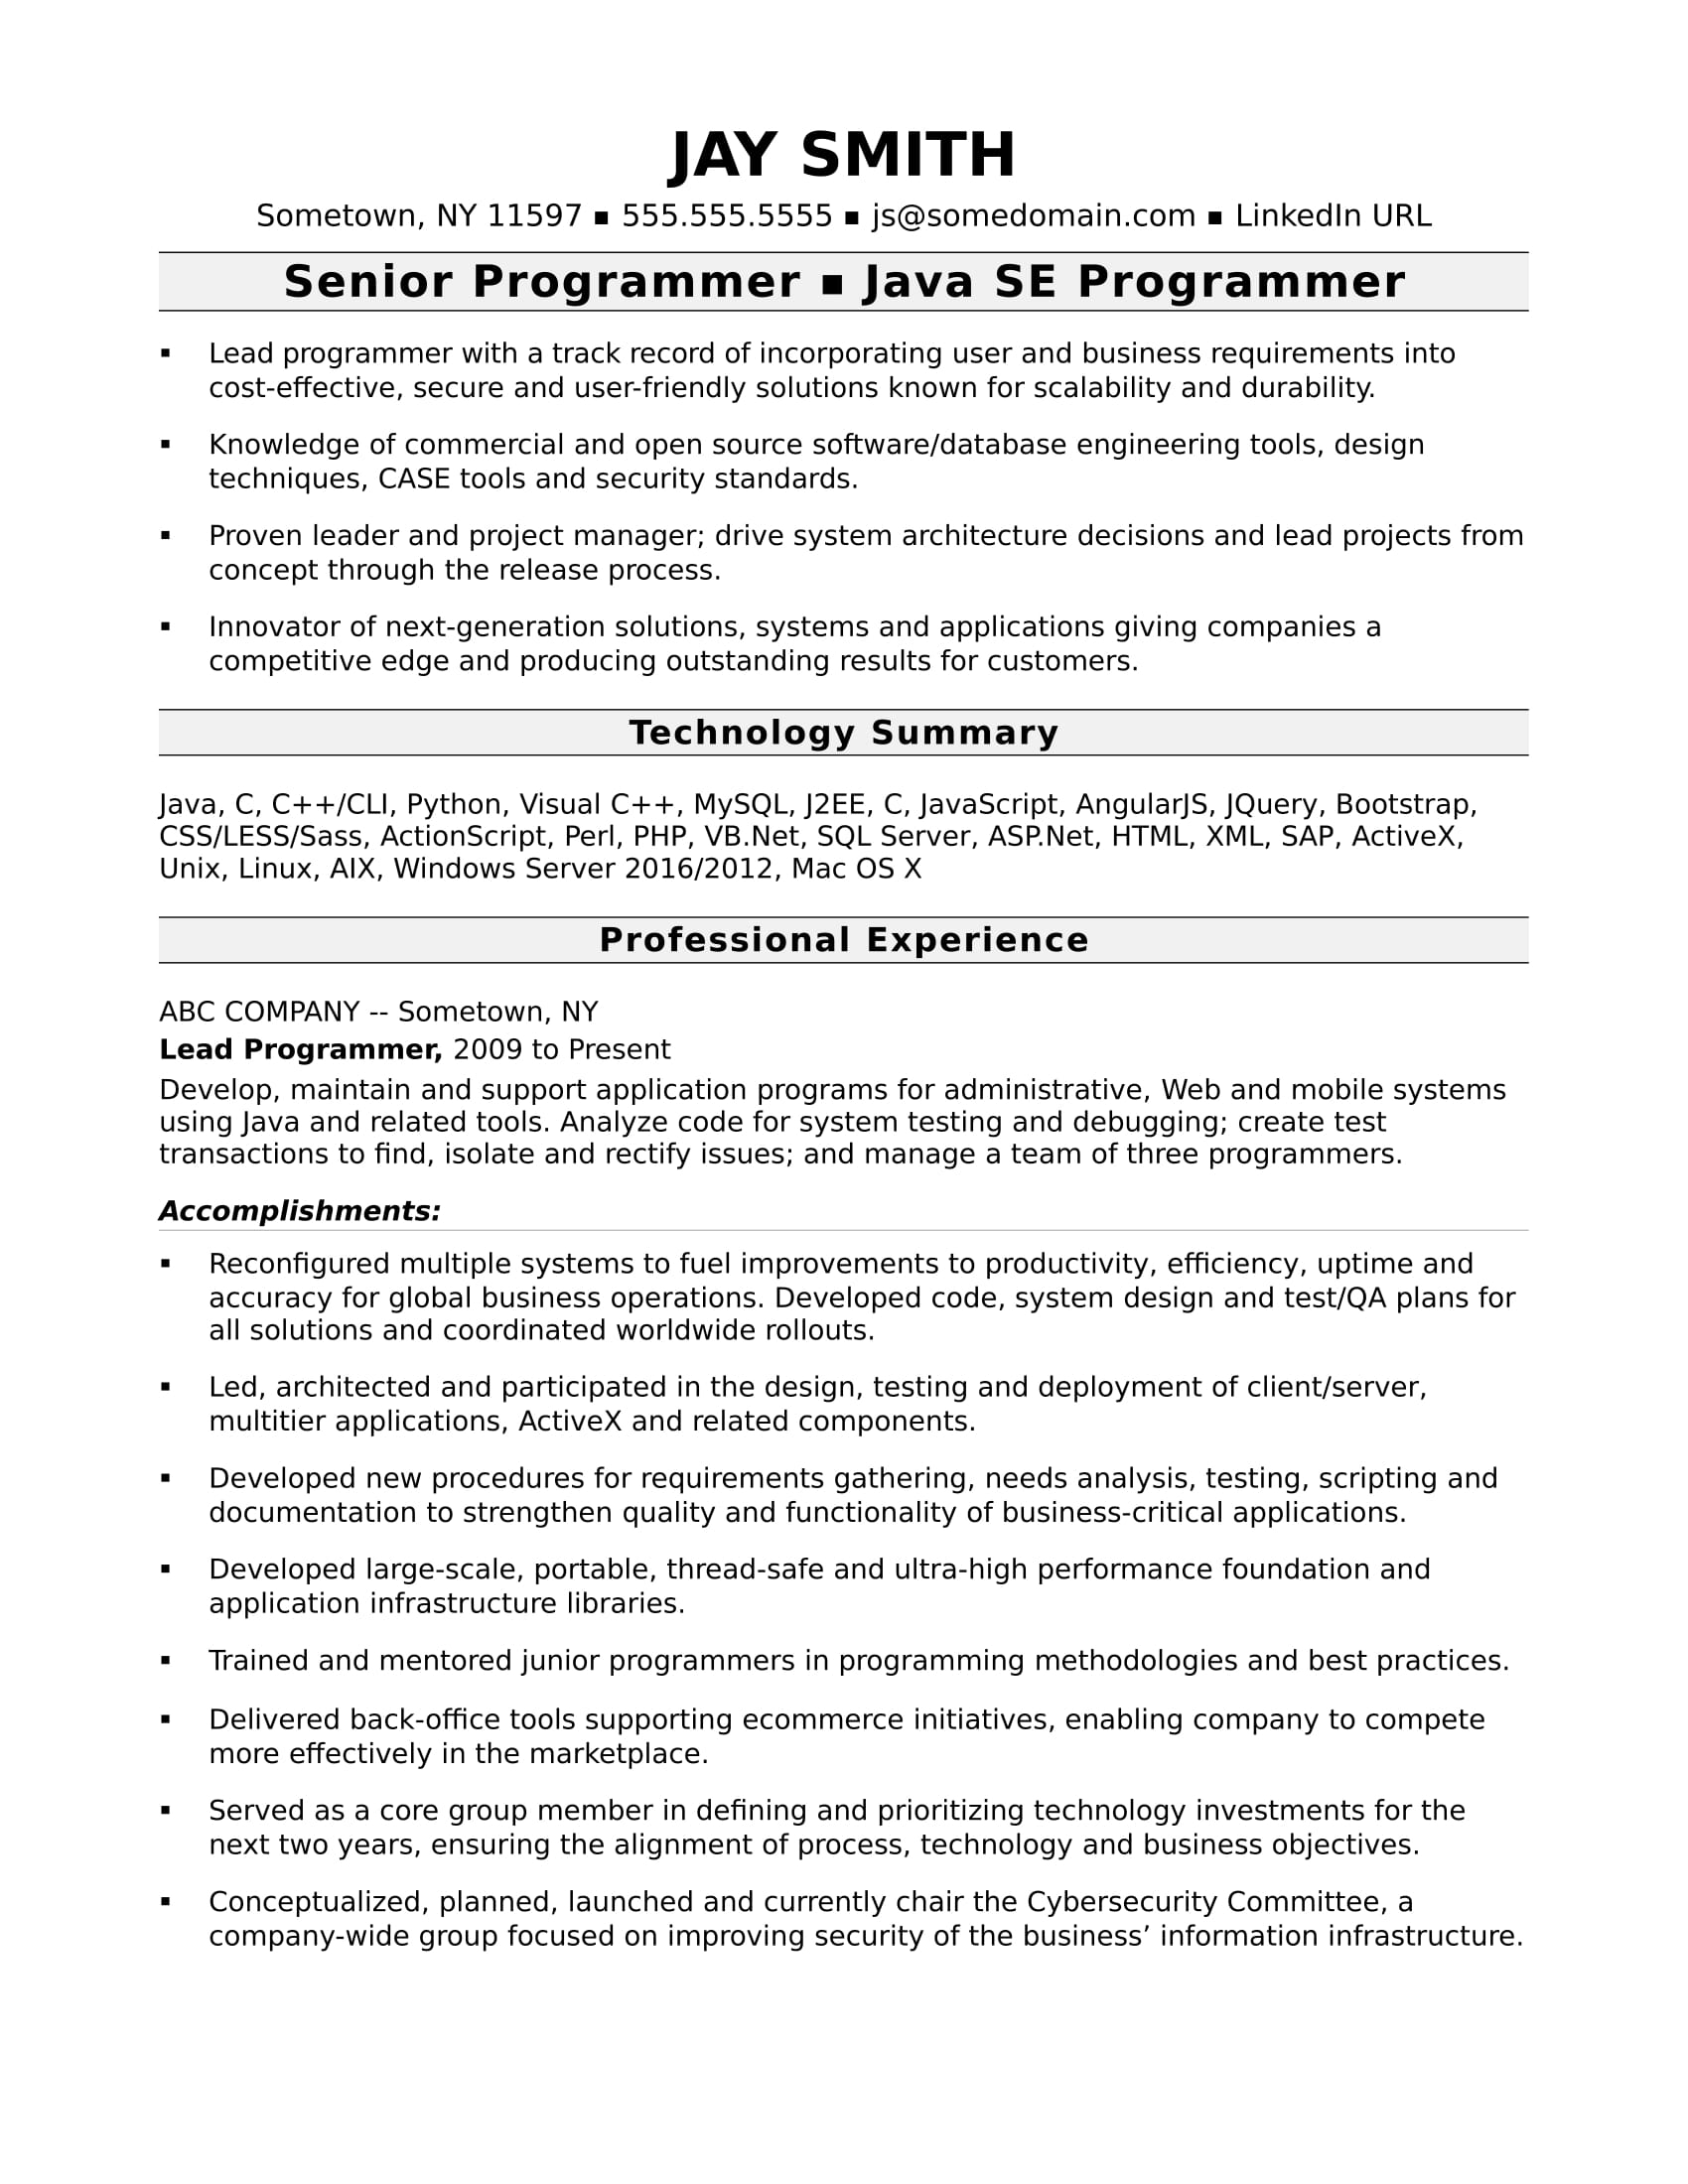 Sample Resume For An Experienced Computer Programmer Monstercom - How to write business requirements document